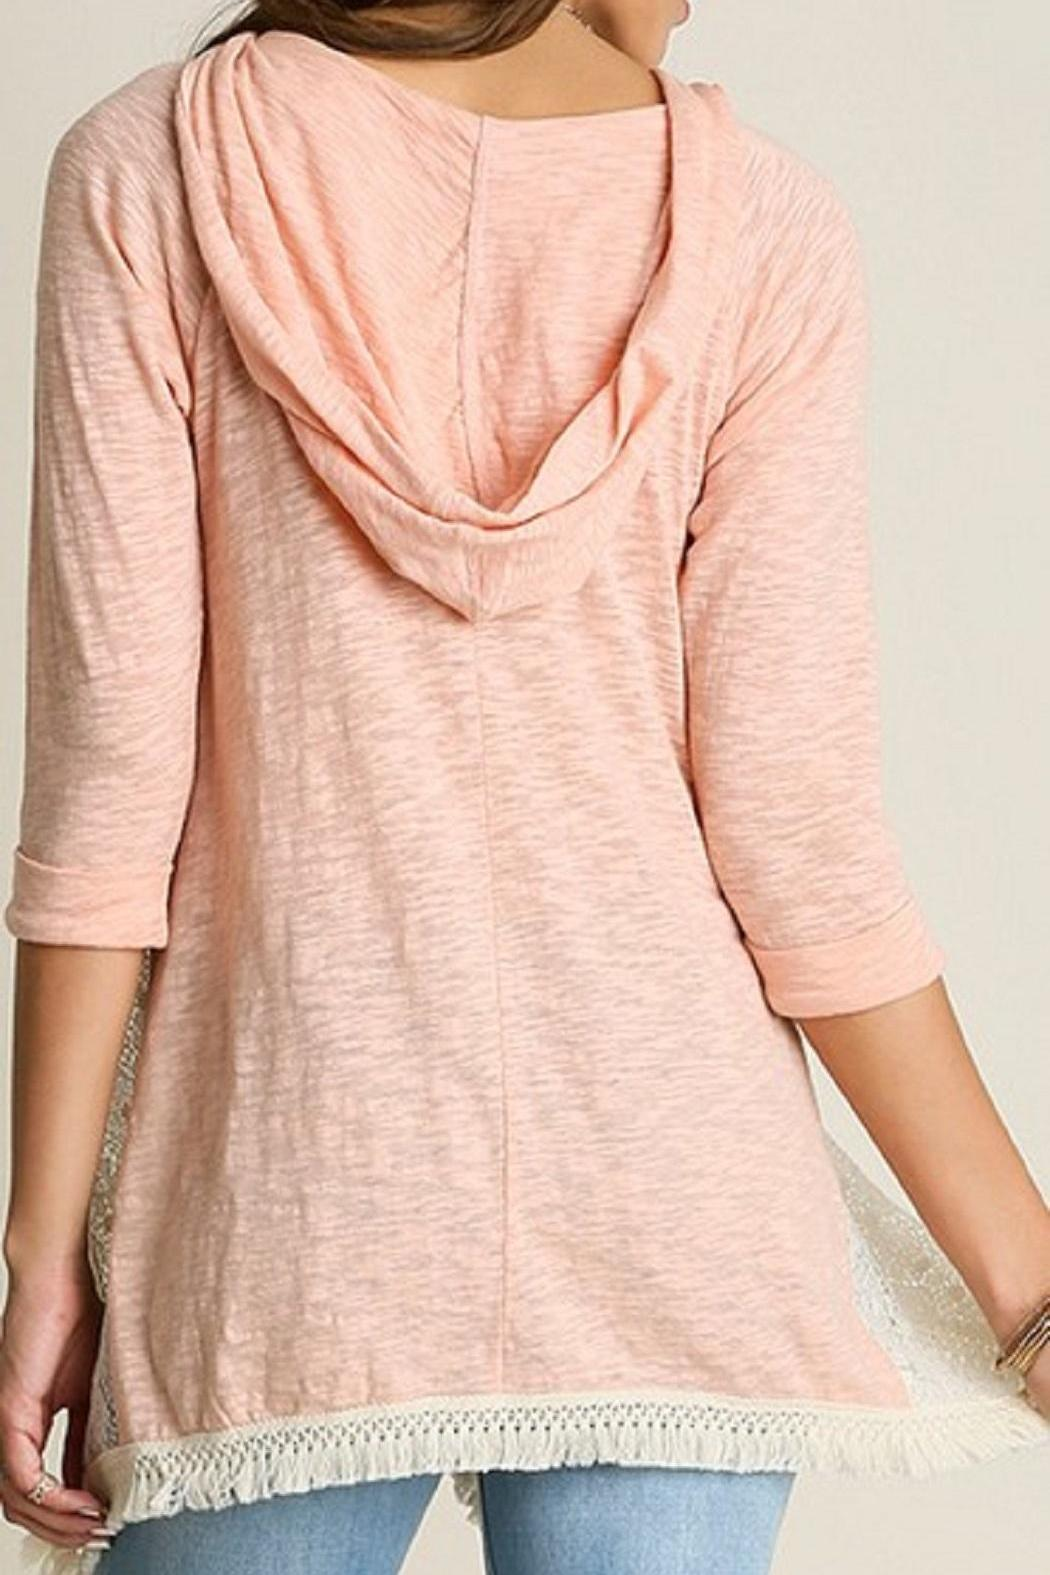 Umgee USA Hooded Lace Top - Front Full Image